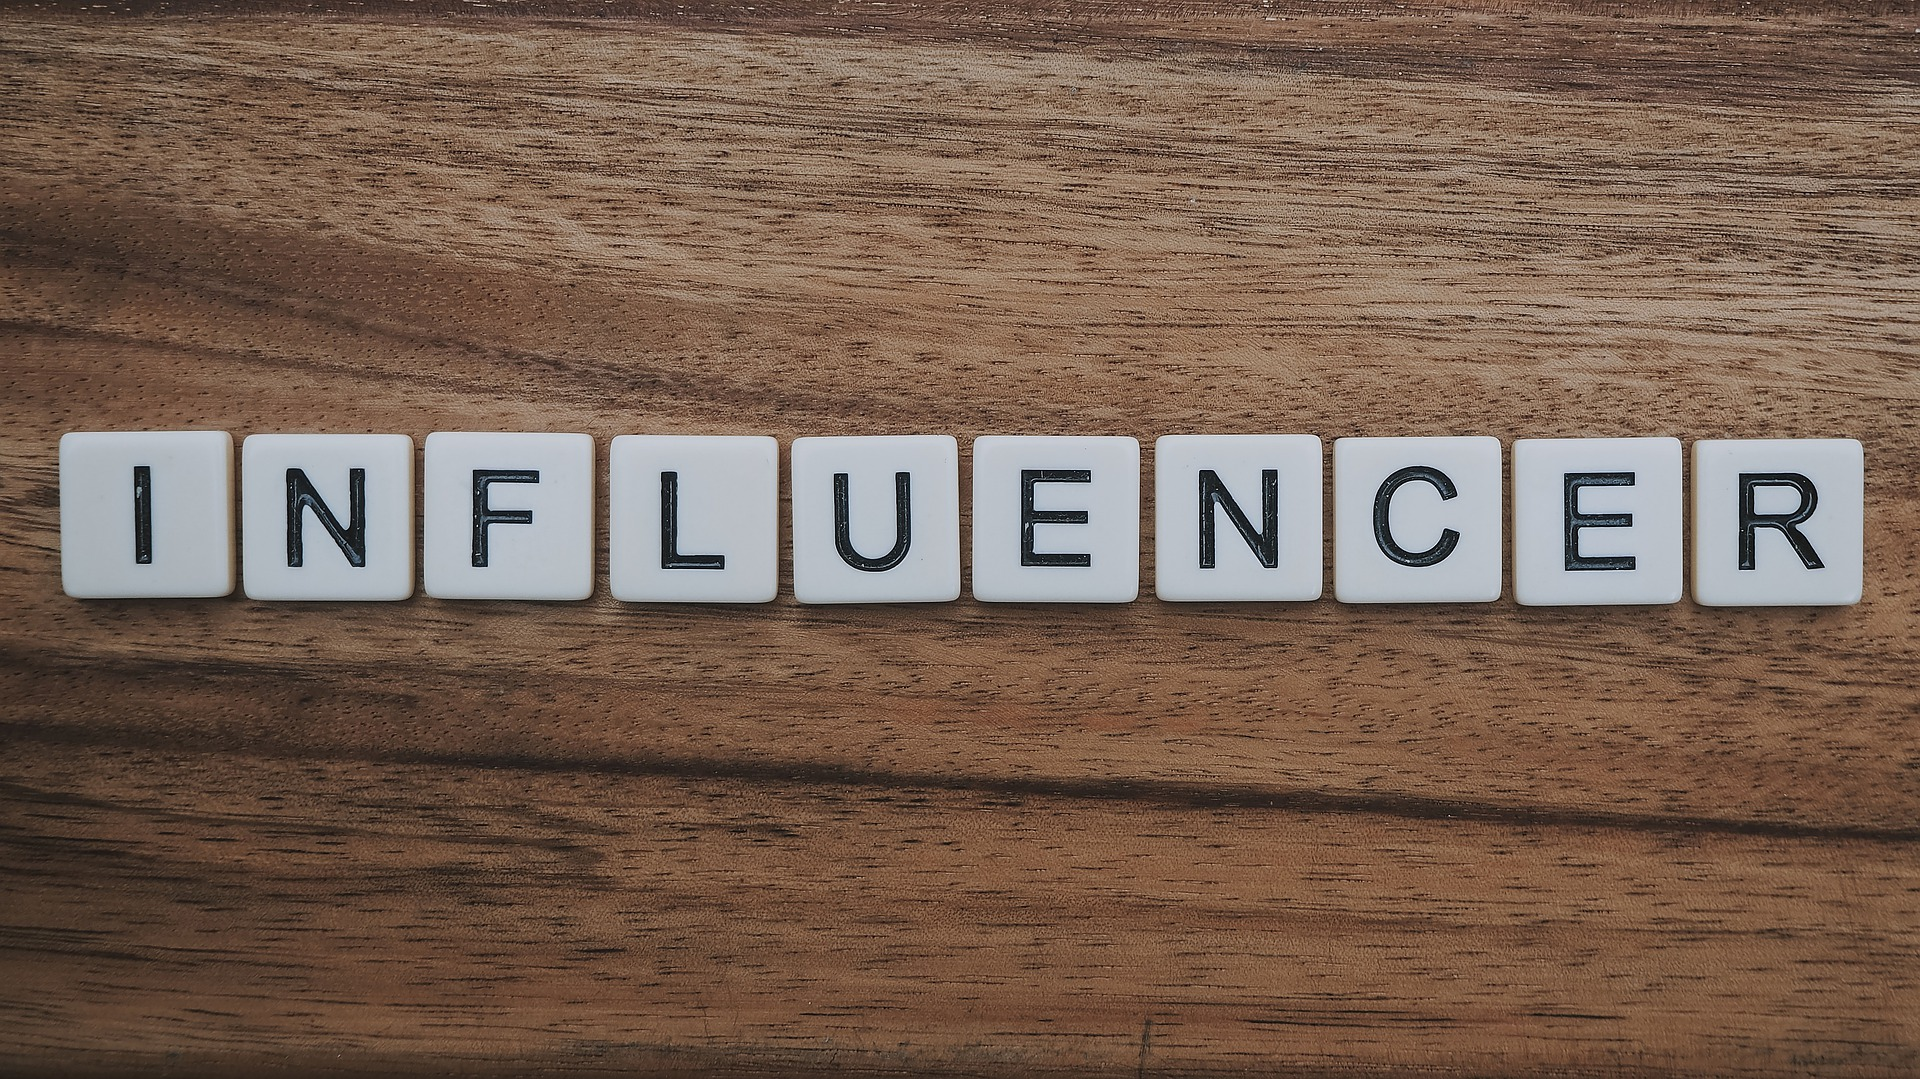 Why You Should Use An Influencer Marketing Platform